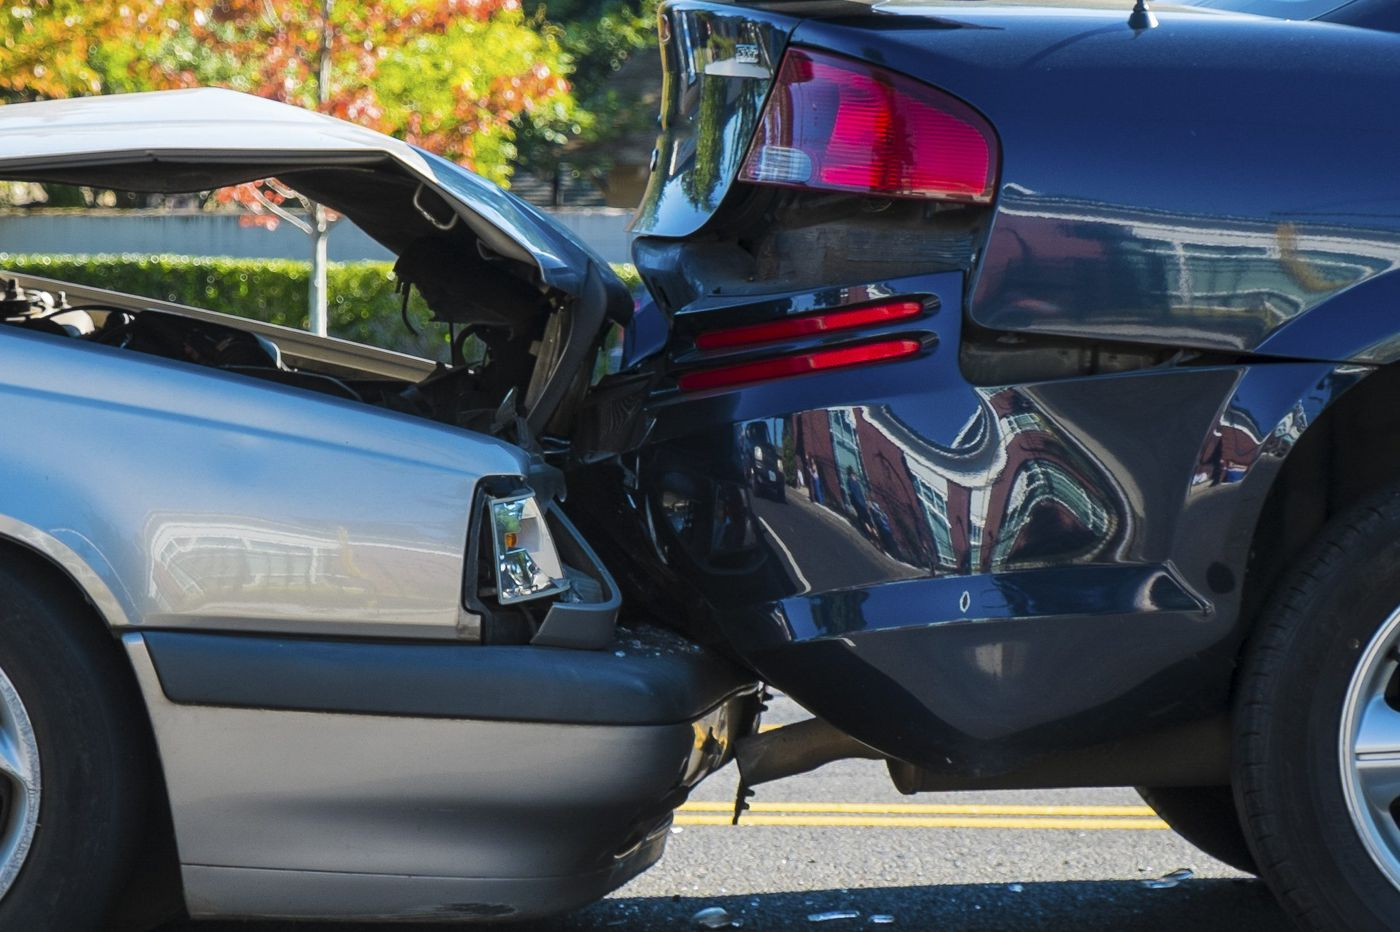 Don't let Jersey drivers make other states' roads more dangerous | Editorial